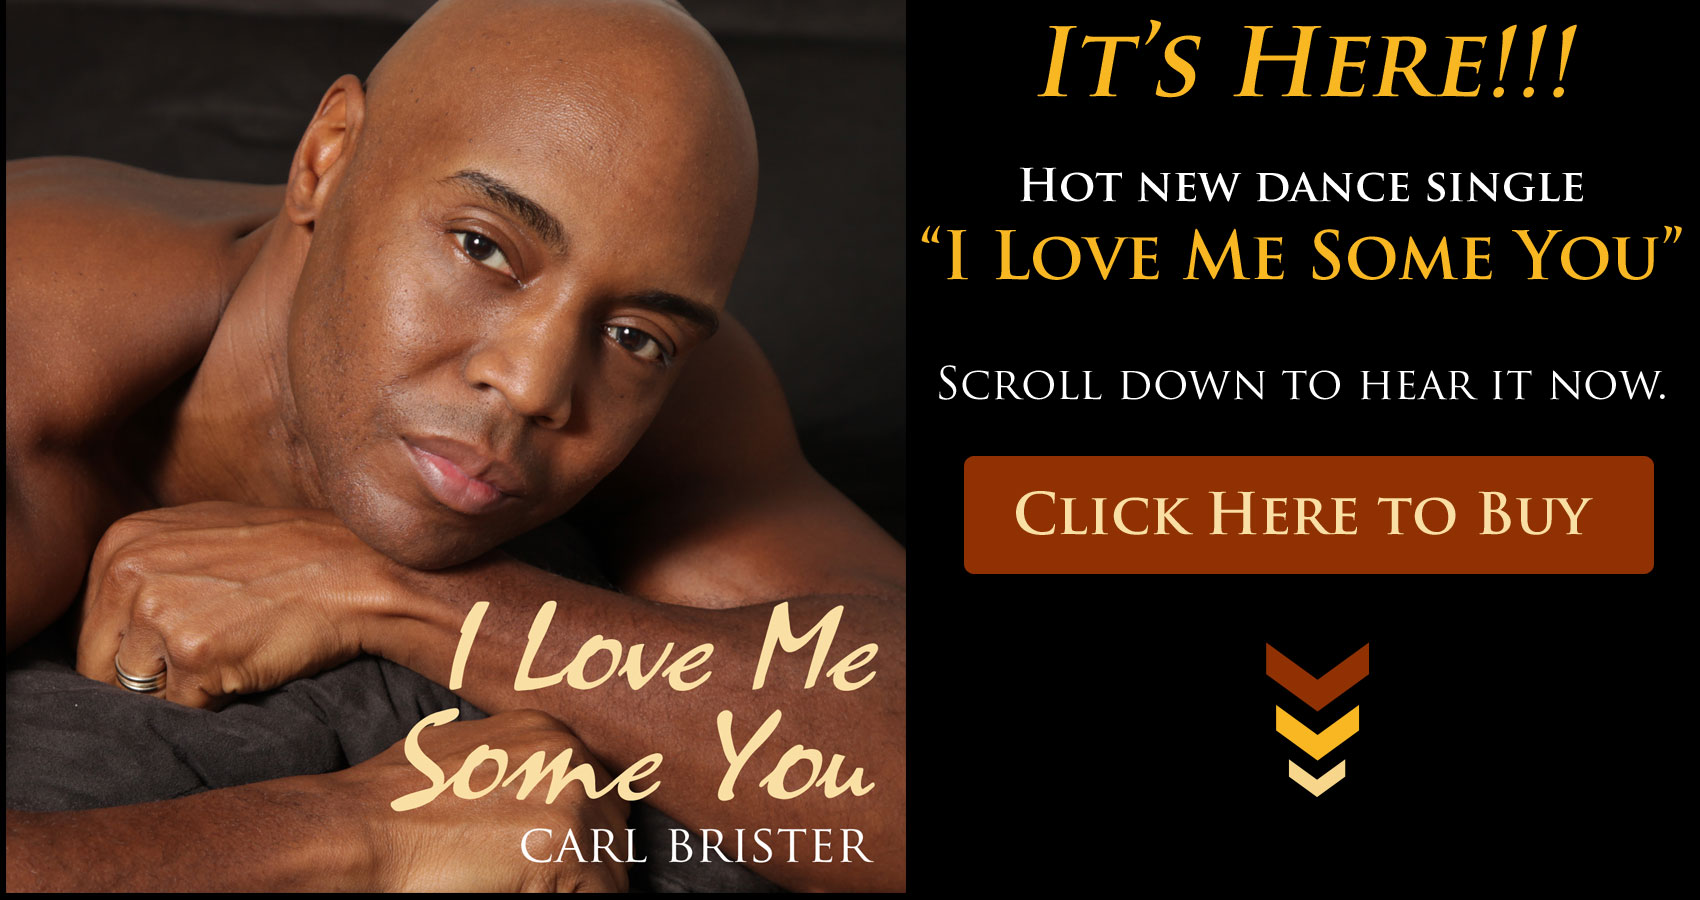 I LOVE ME SOME YOU - hot new dance single by Carl Brister. Click here to buy.